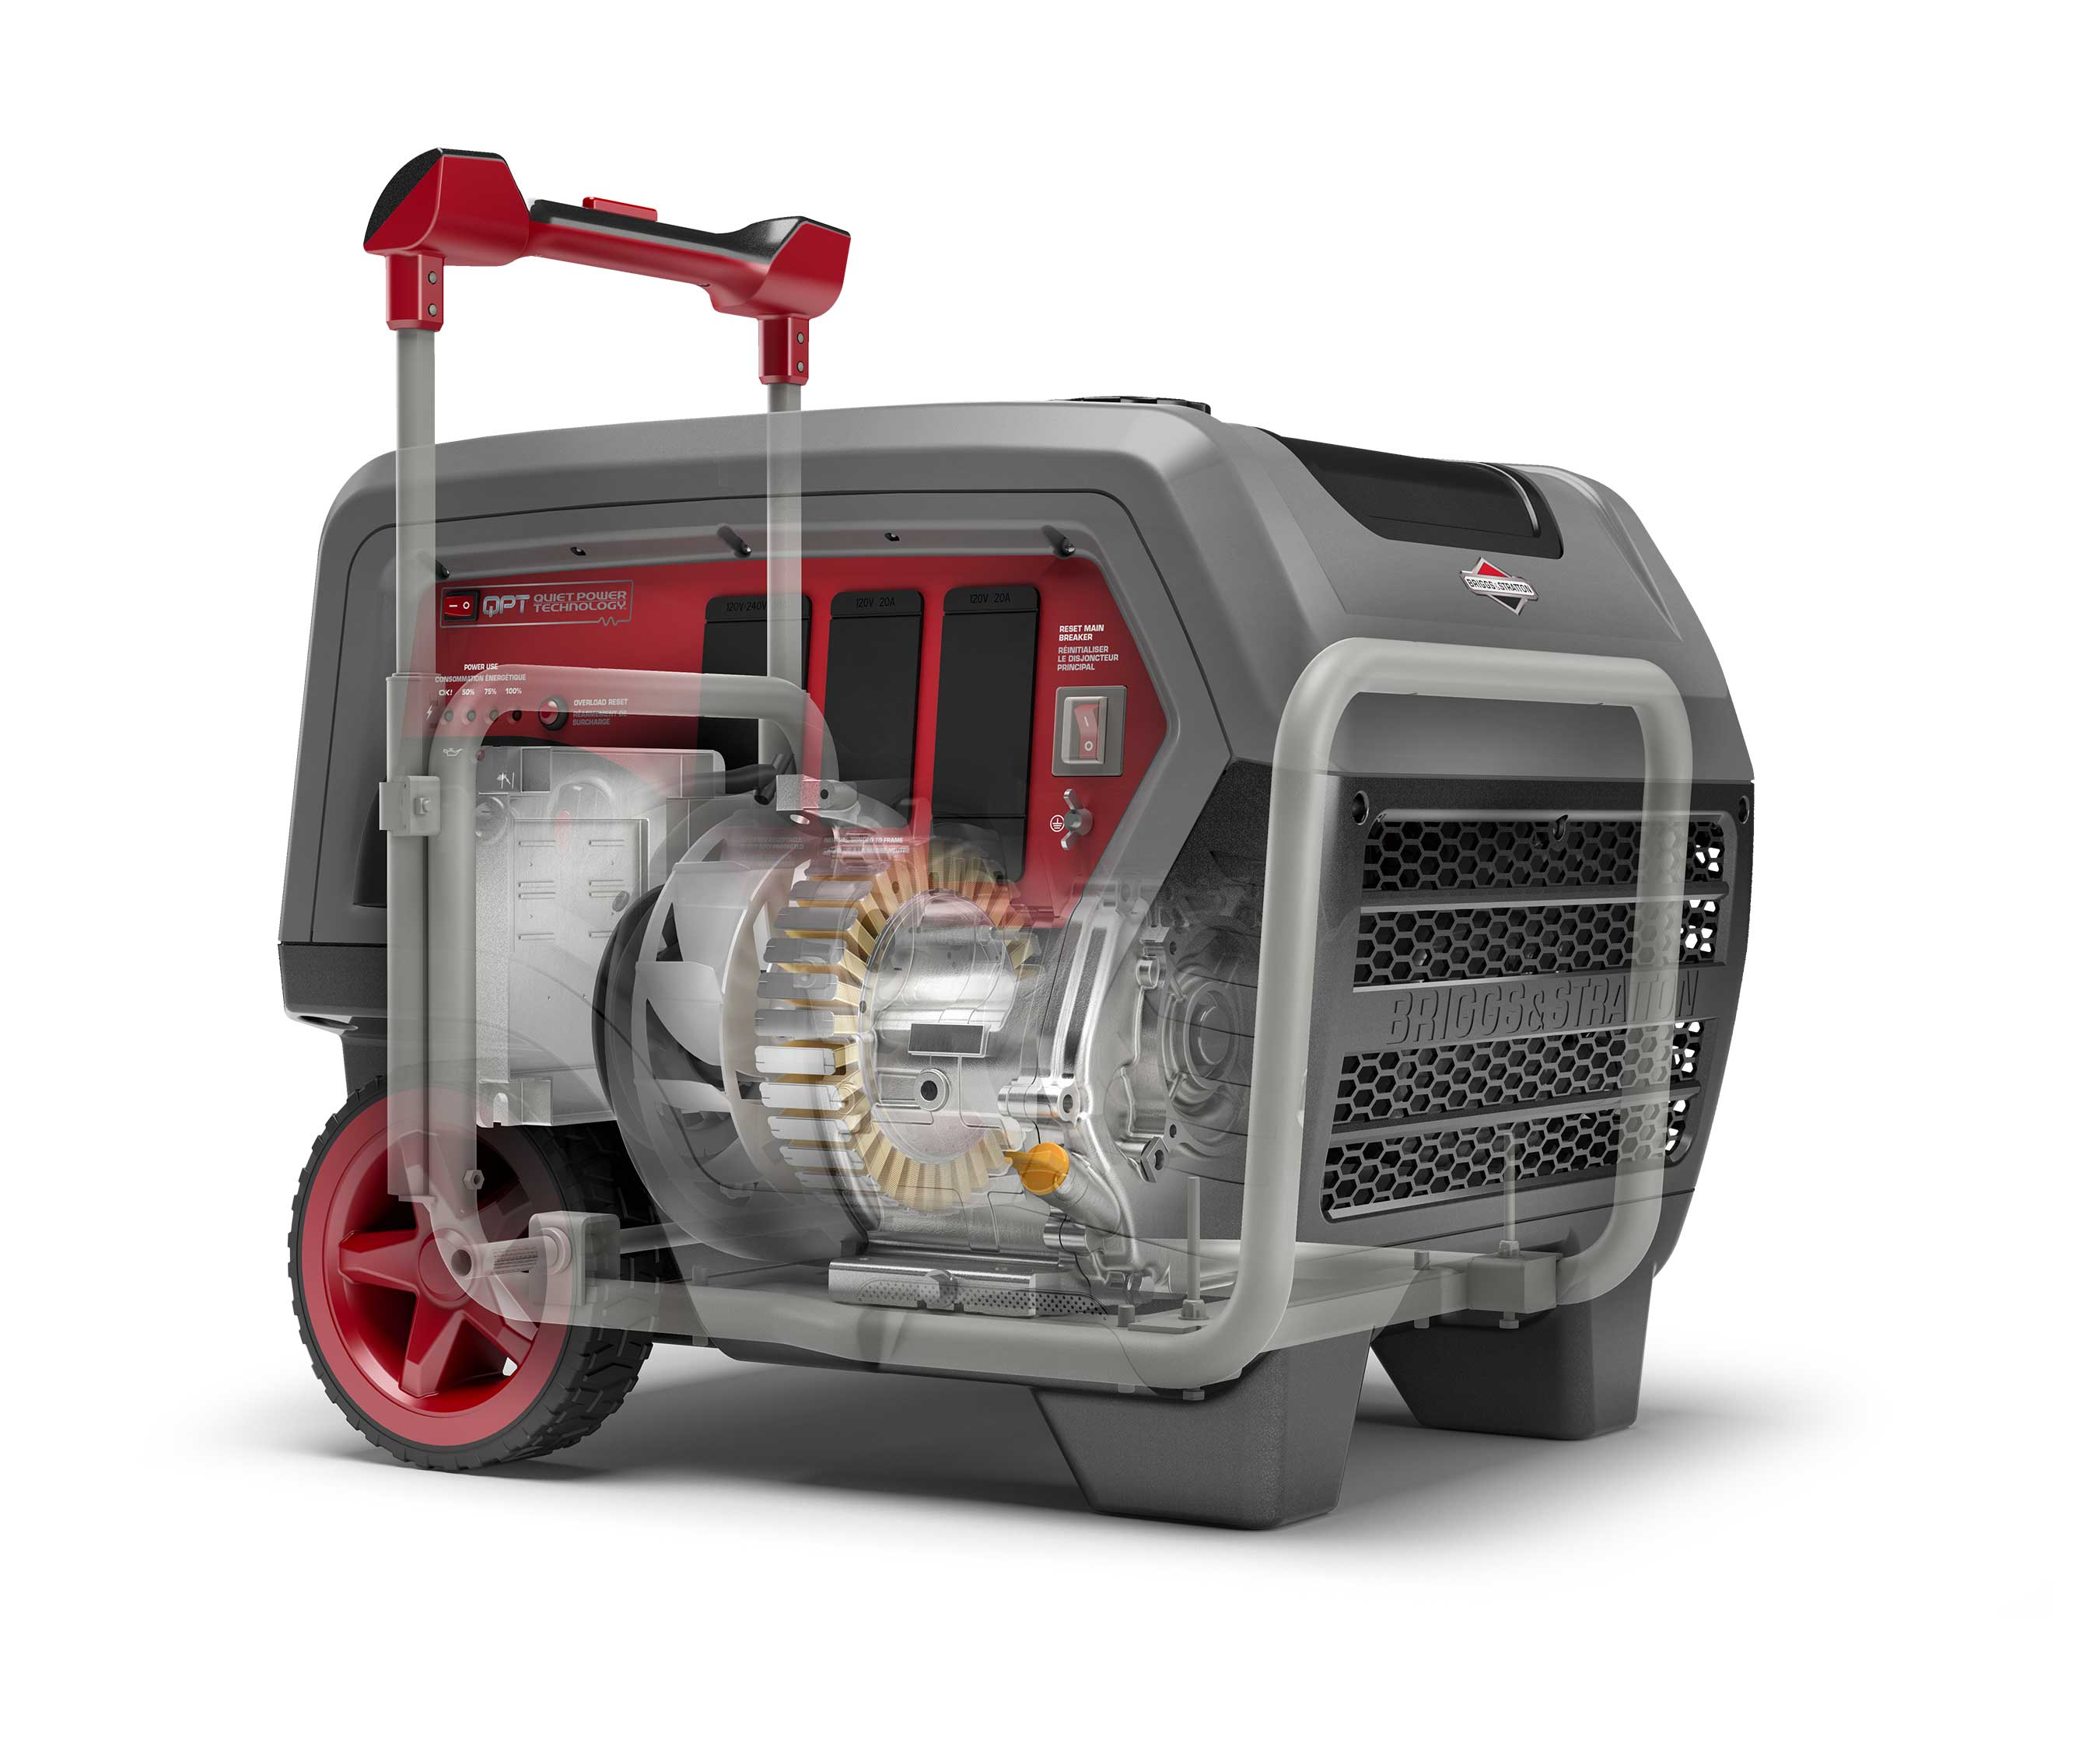 Briggs & Stratton Unveils First Inverter Generator For Home Backup